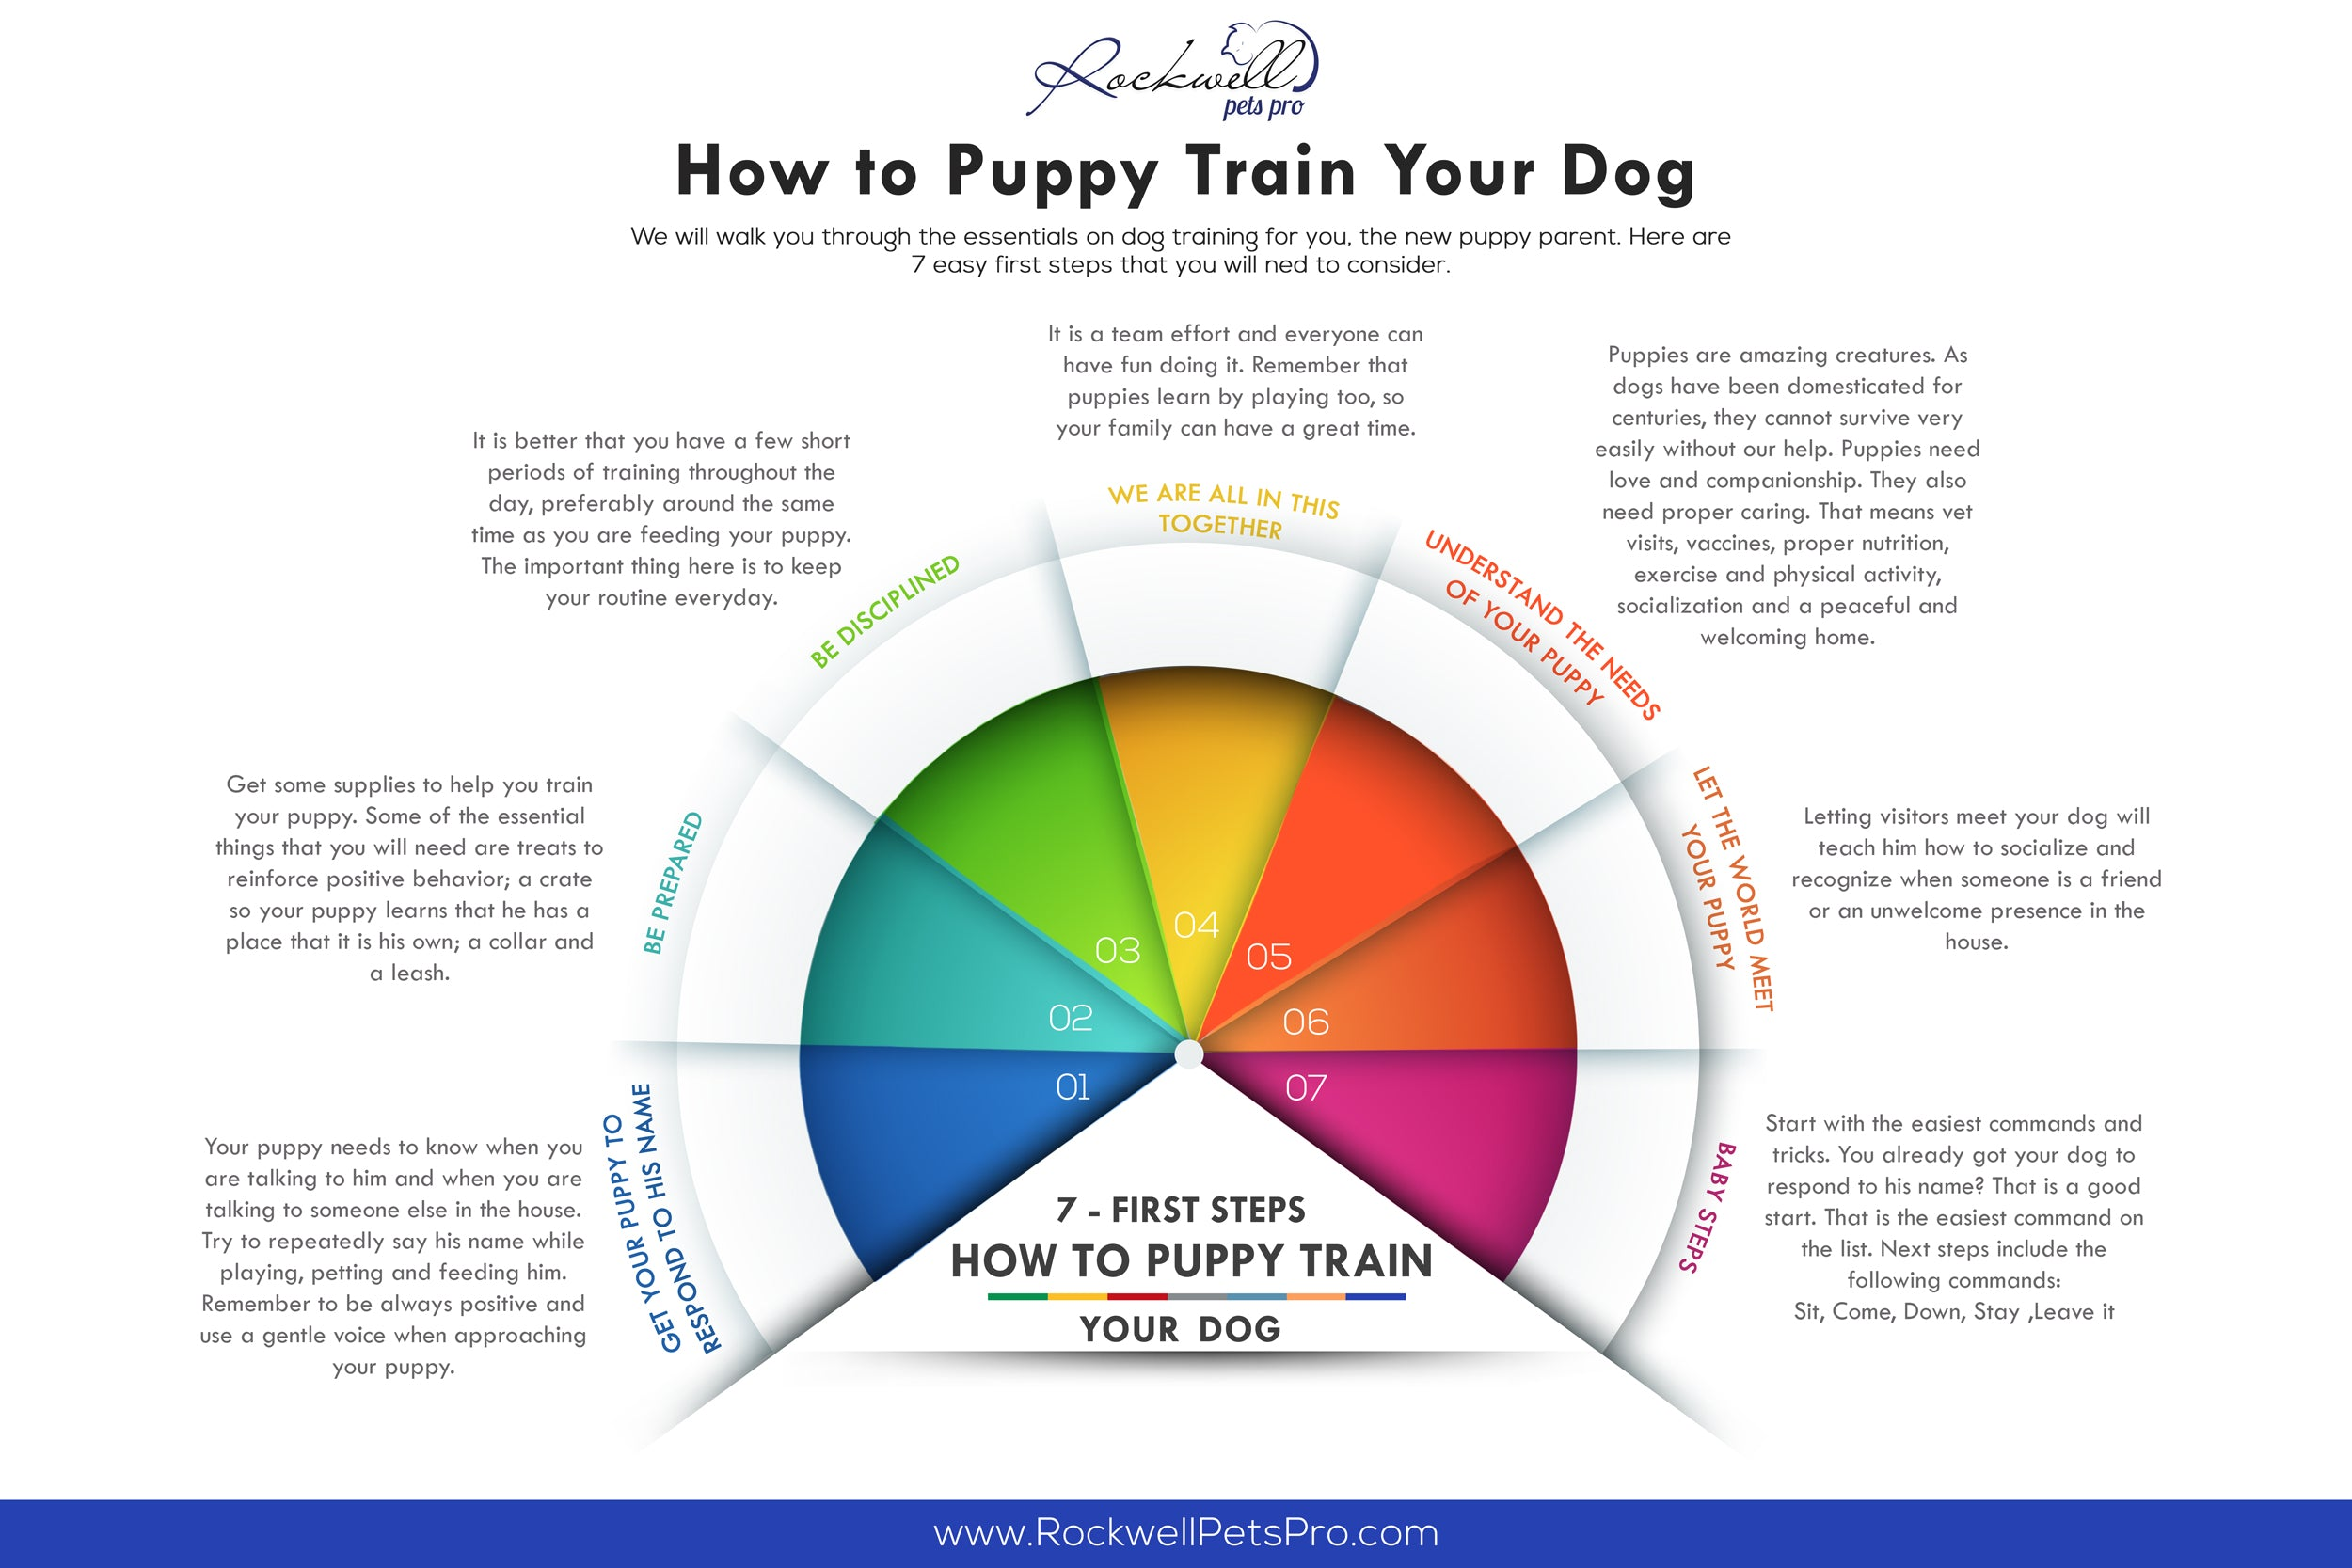 How To Puppy Train Your Dog: 7 First Steps